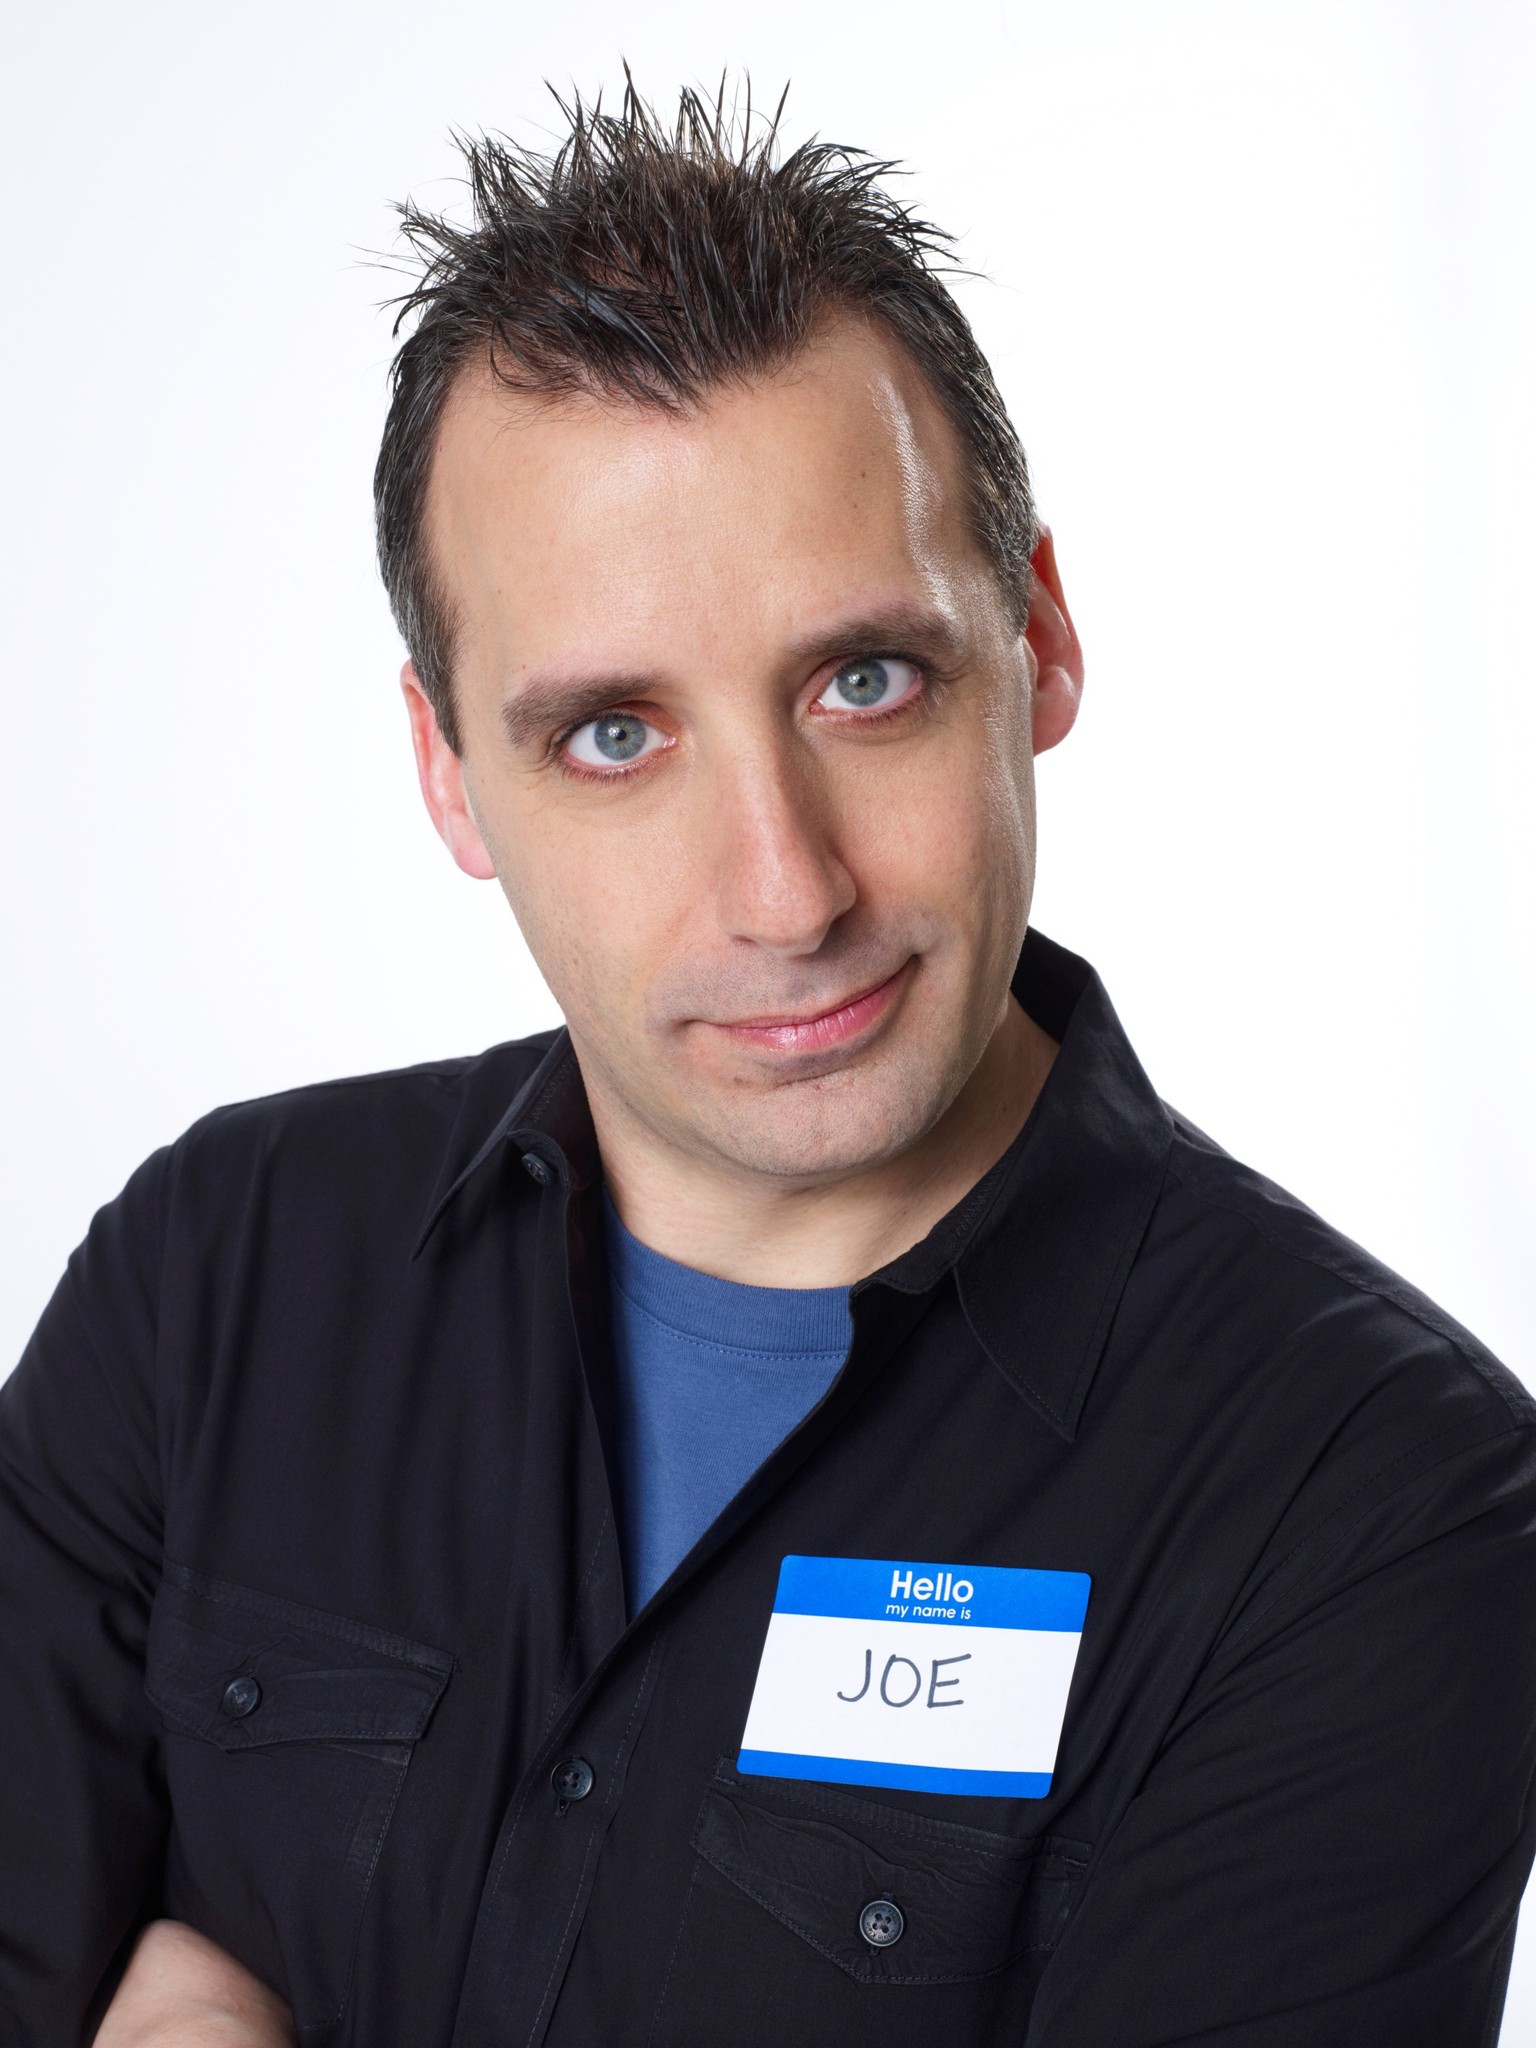 The 44-year old son of father (?) and mother(?) Joe Gatto in 2020 photo. Joe Gatto earned a  million dollar salary - leaving the net worth at 0.5 million in 2020